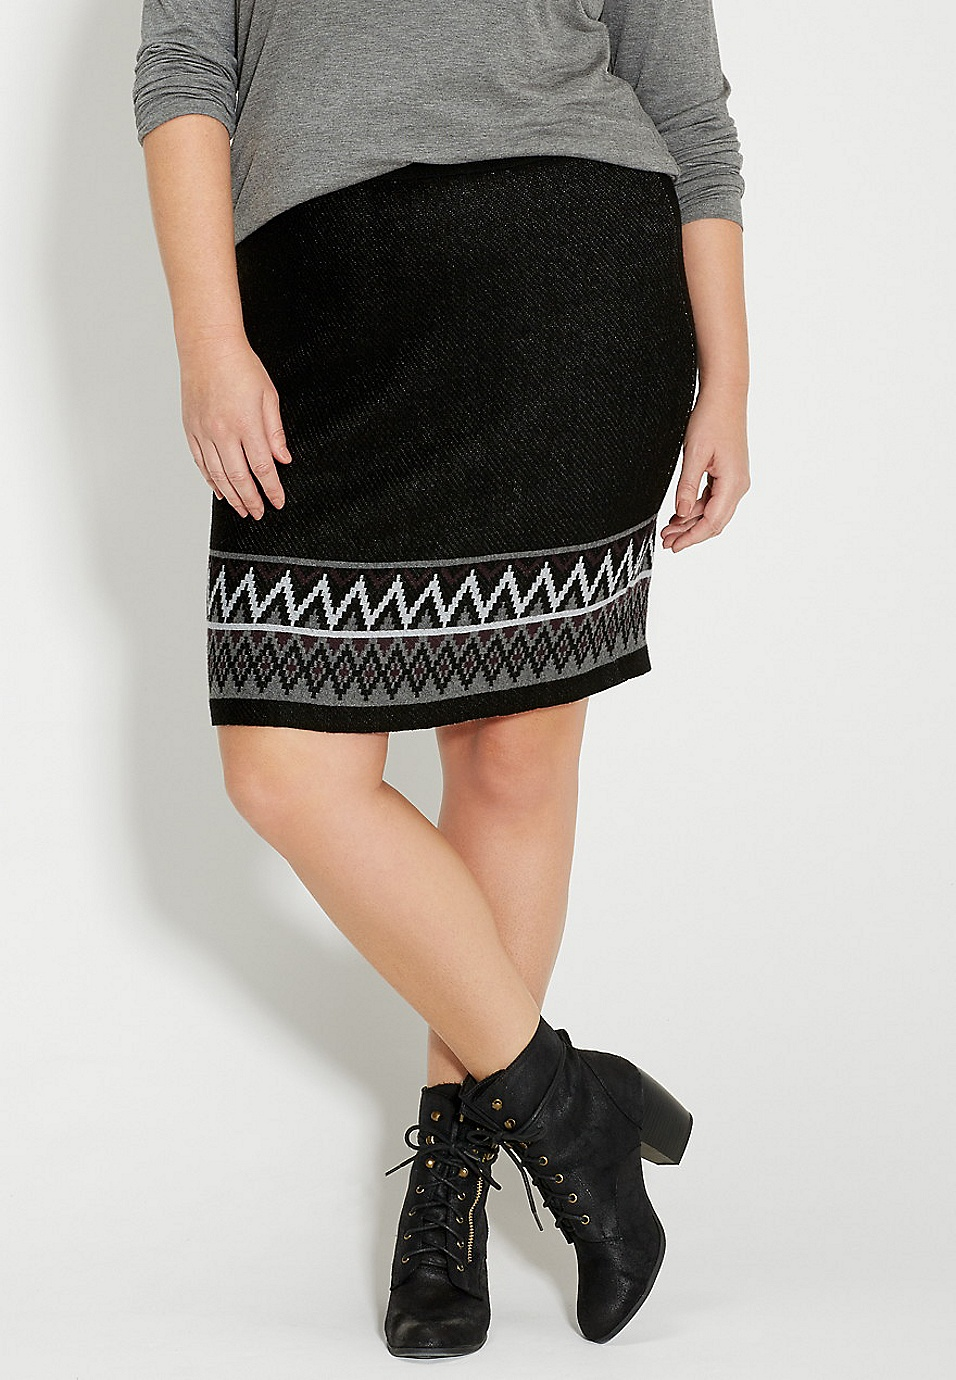 abd2fca2ac3 plus size sweater skirt with patterned border